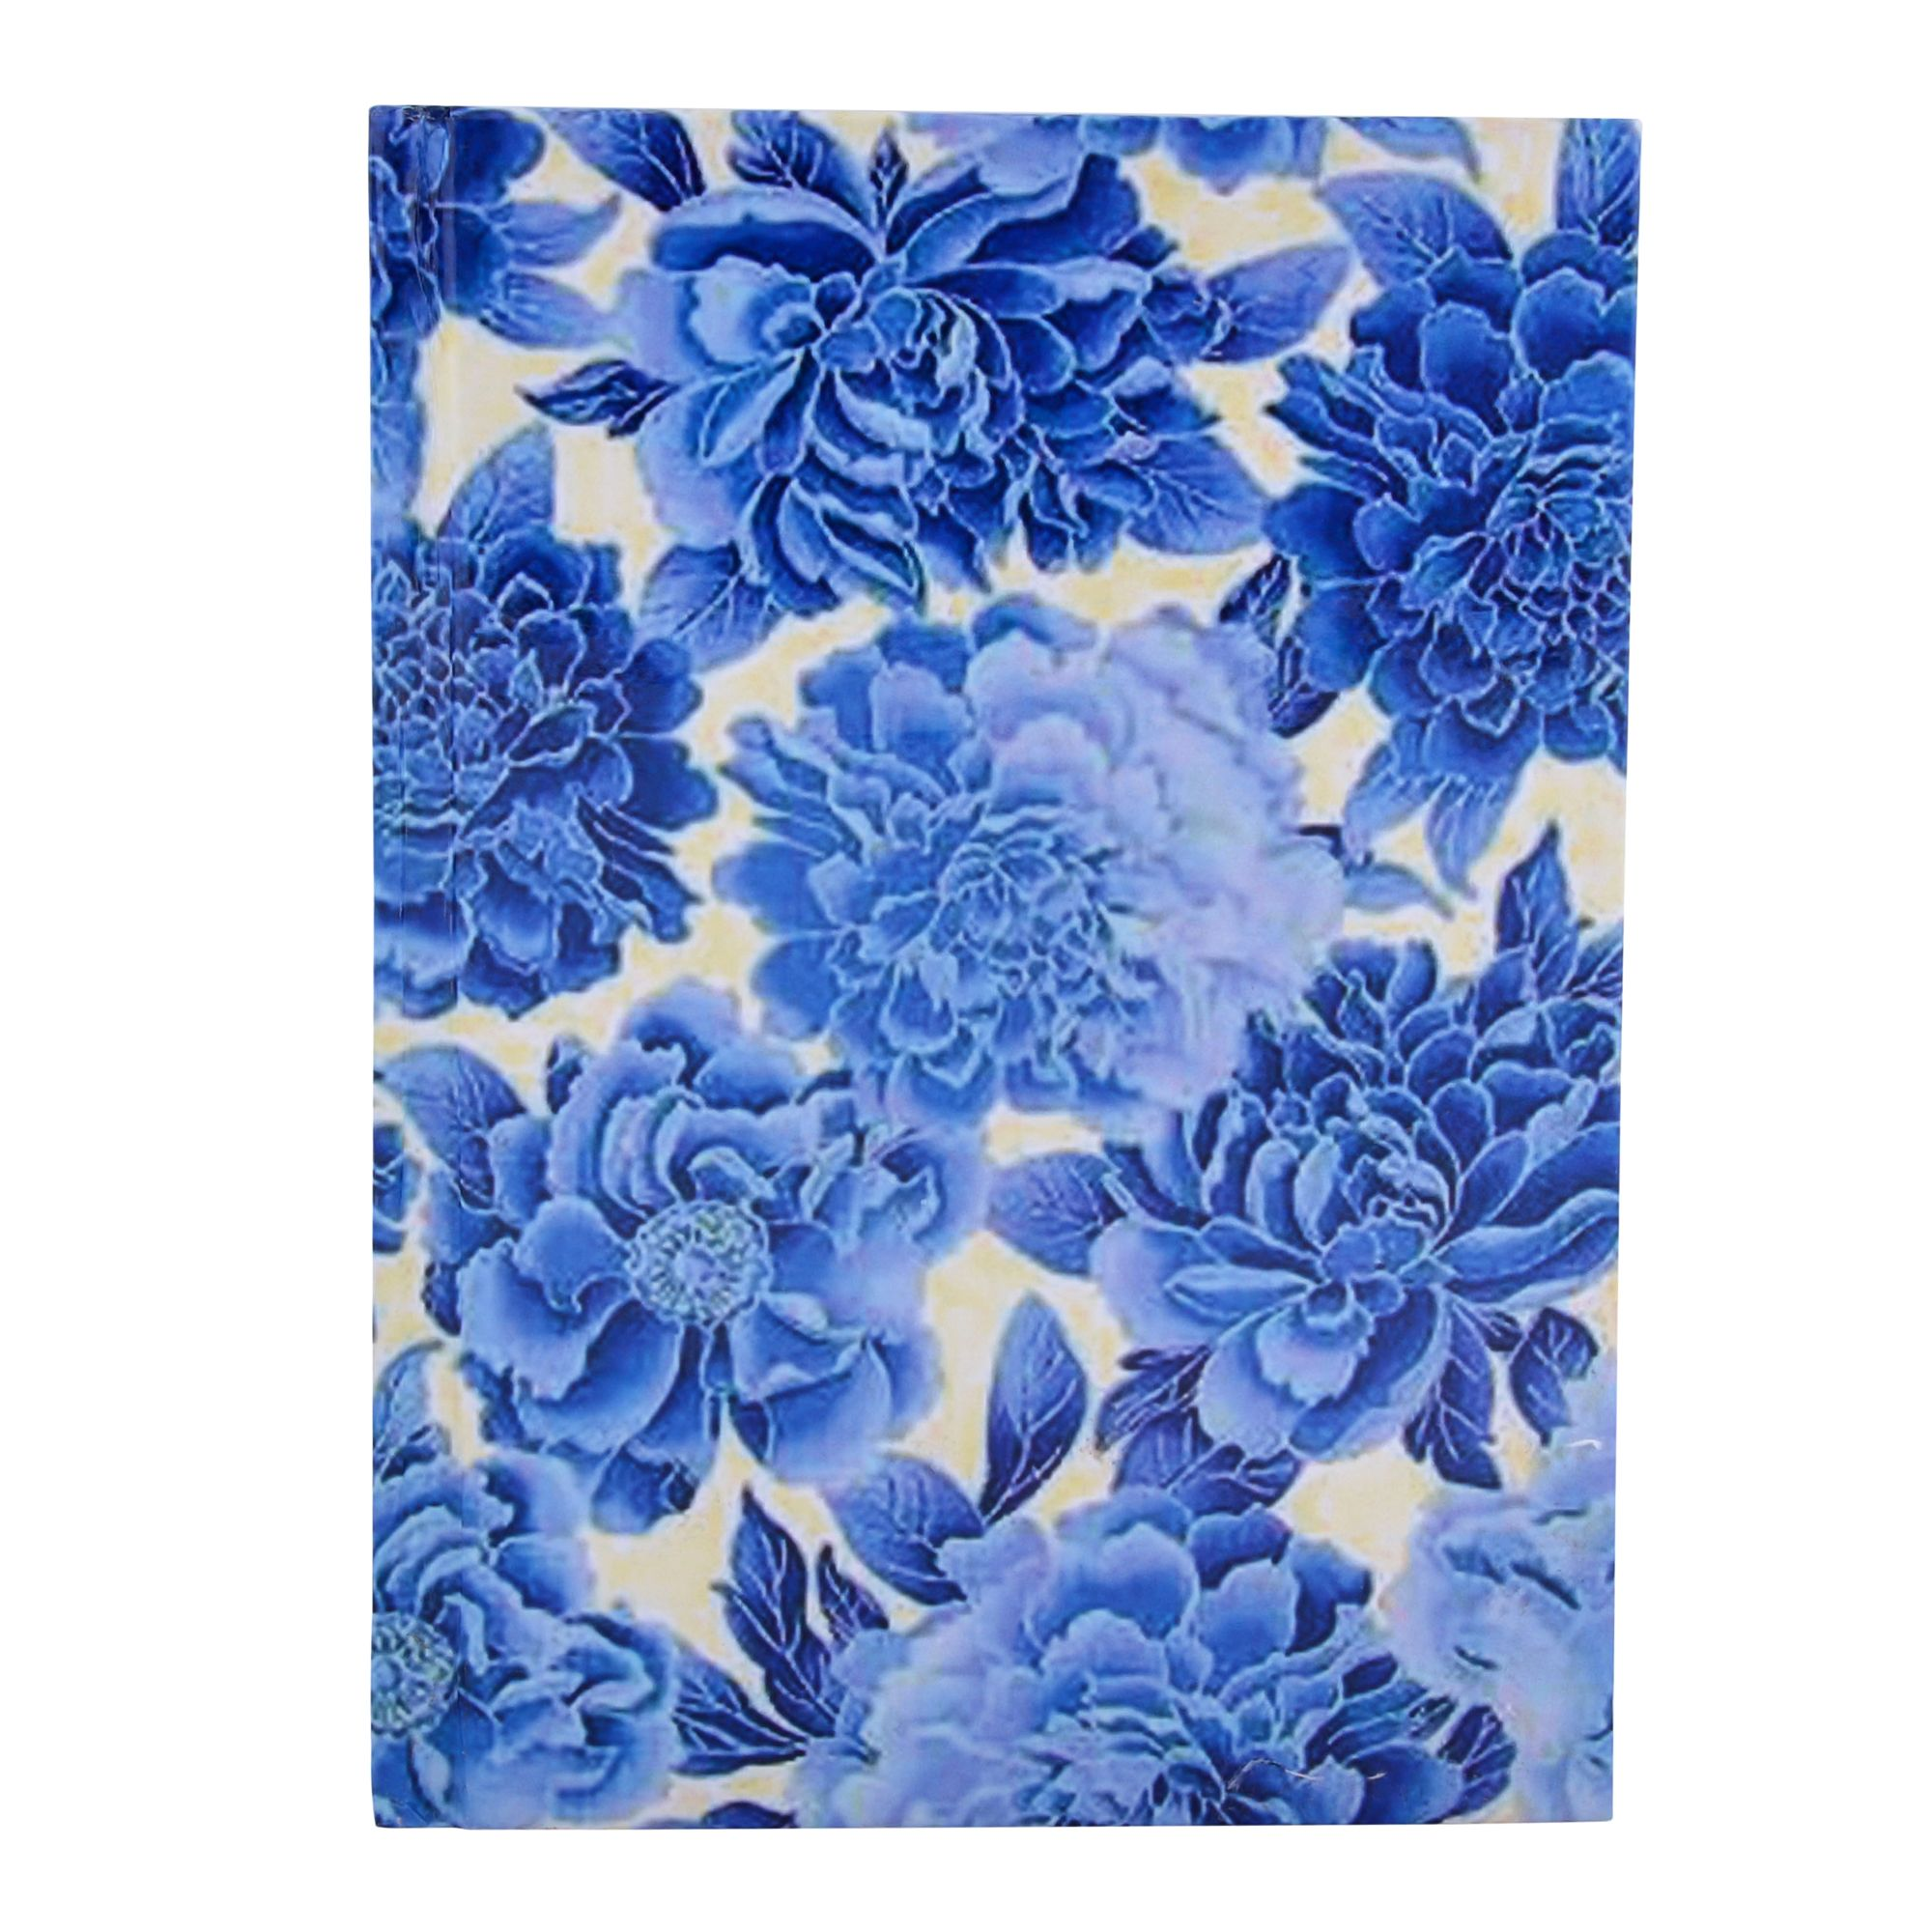 Blue White Floral Handmade Paper Diary